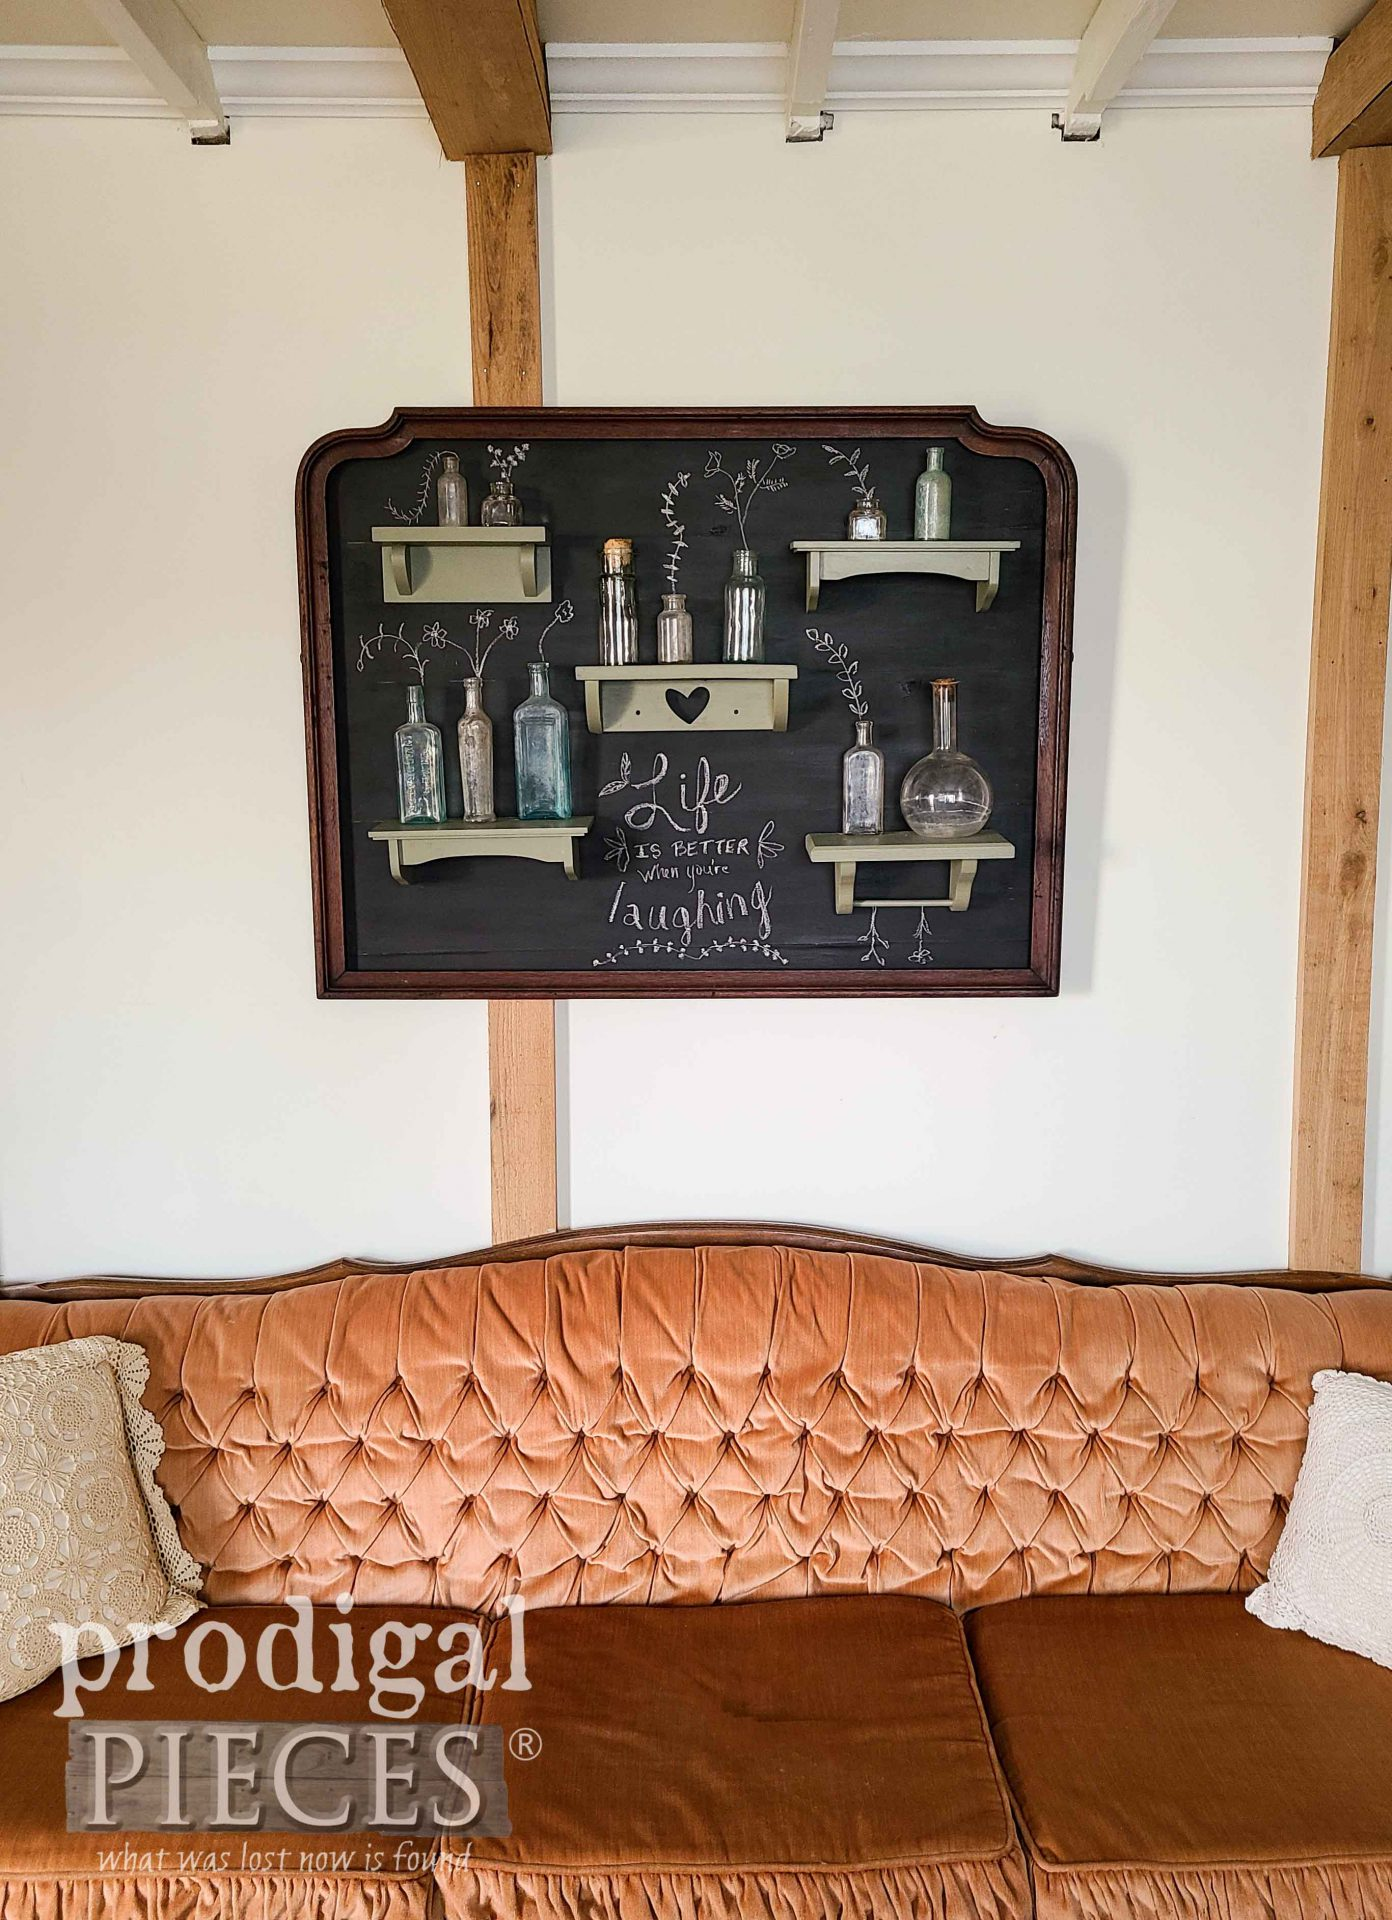 Upcycled Mirror Frame Chalkboard Art with Apothecary Jars by Larissa of Prodigal Pieces | prodigalpieces.com #prodigalpieces #diy #chalkboard #art #home